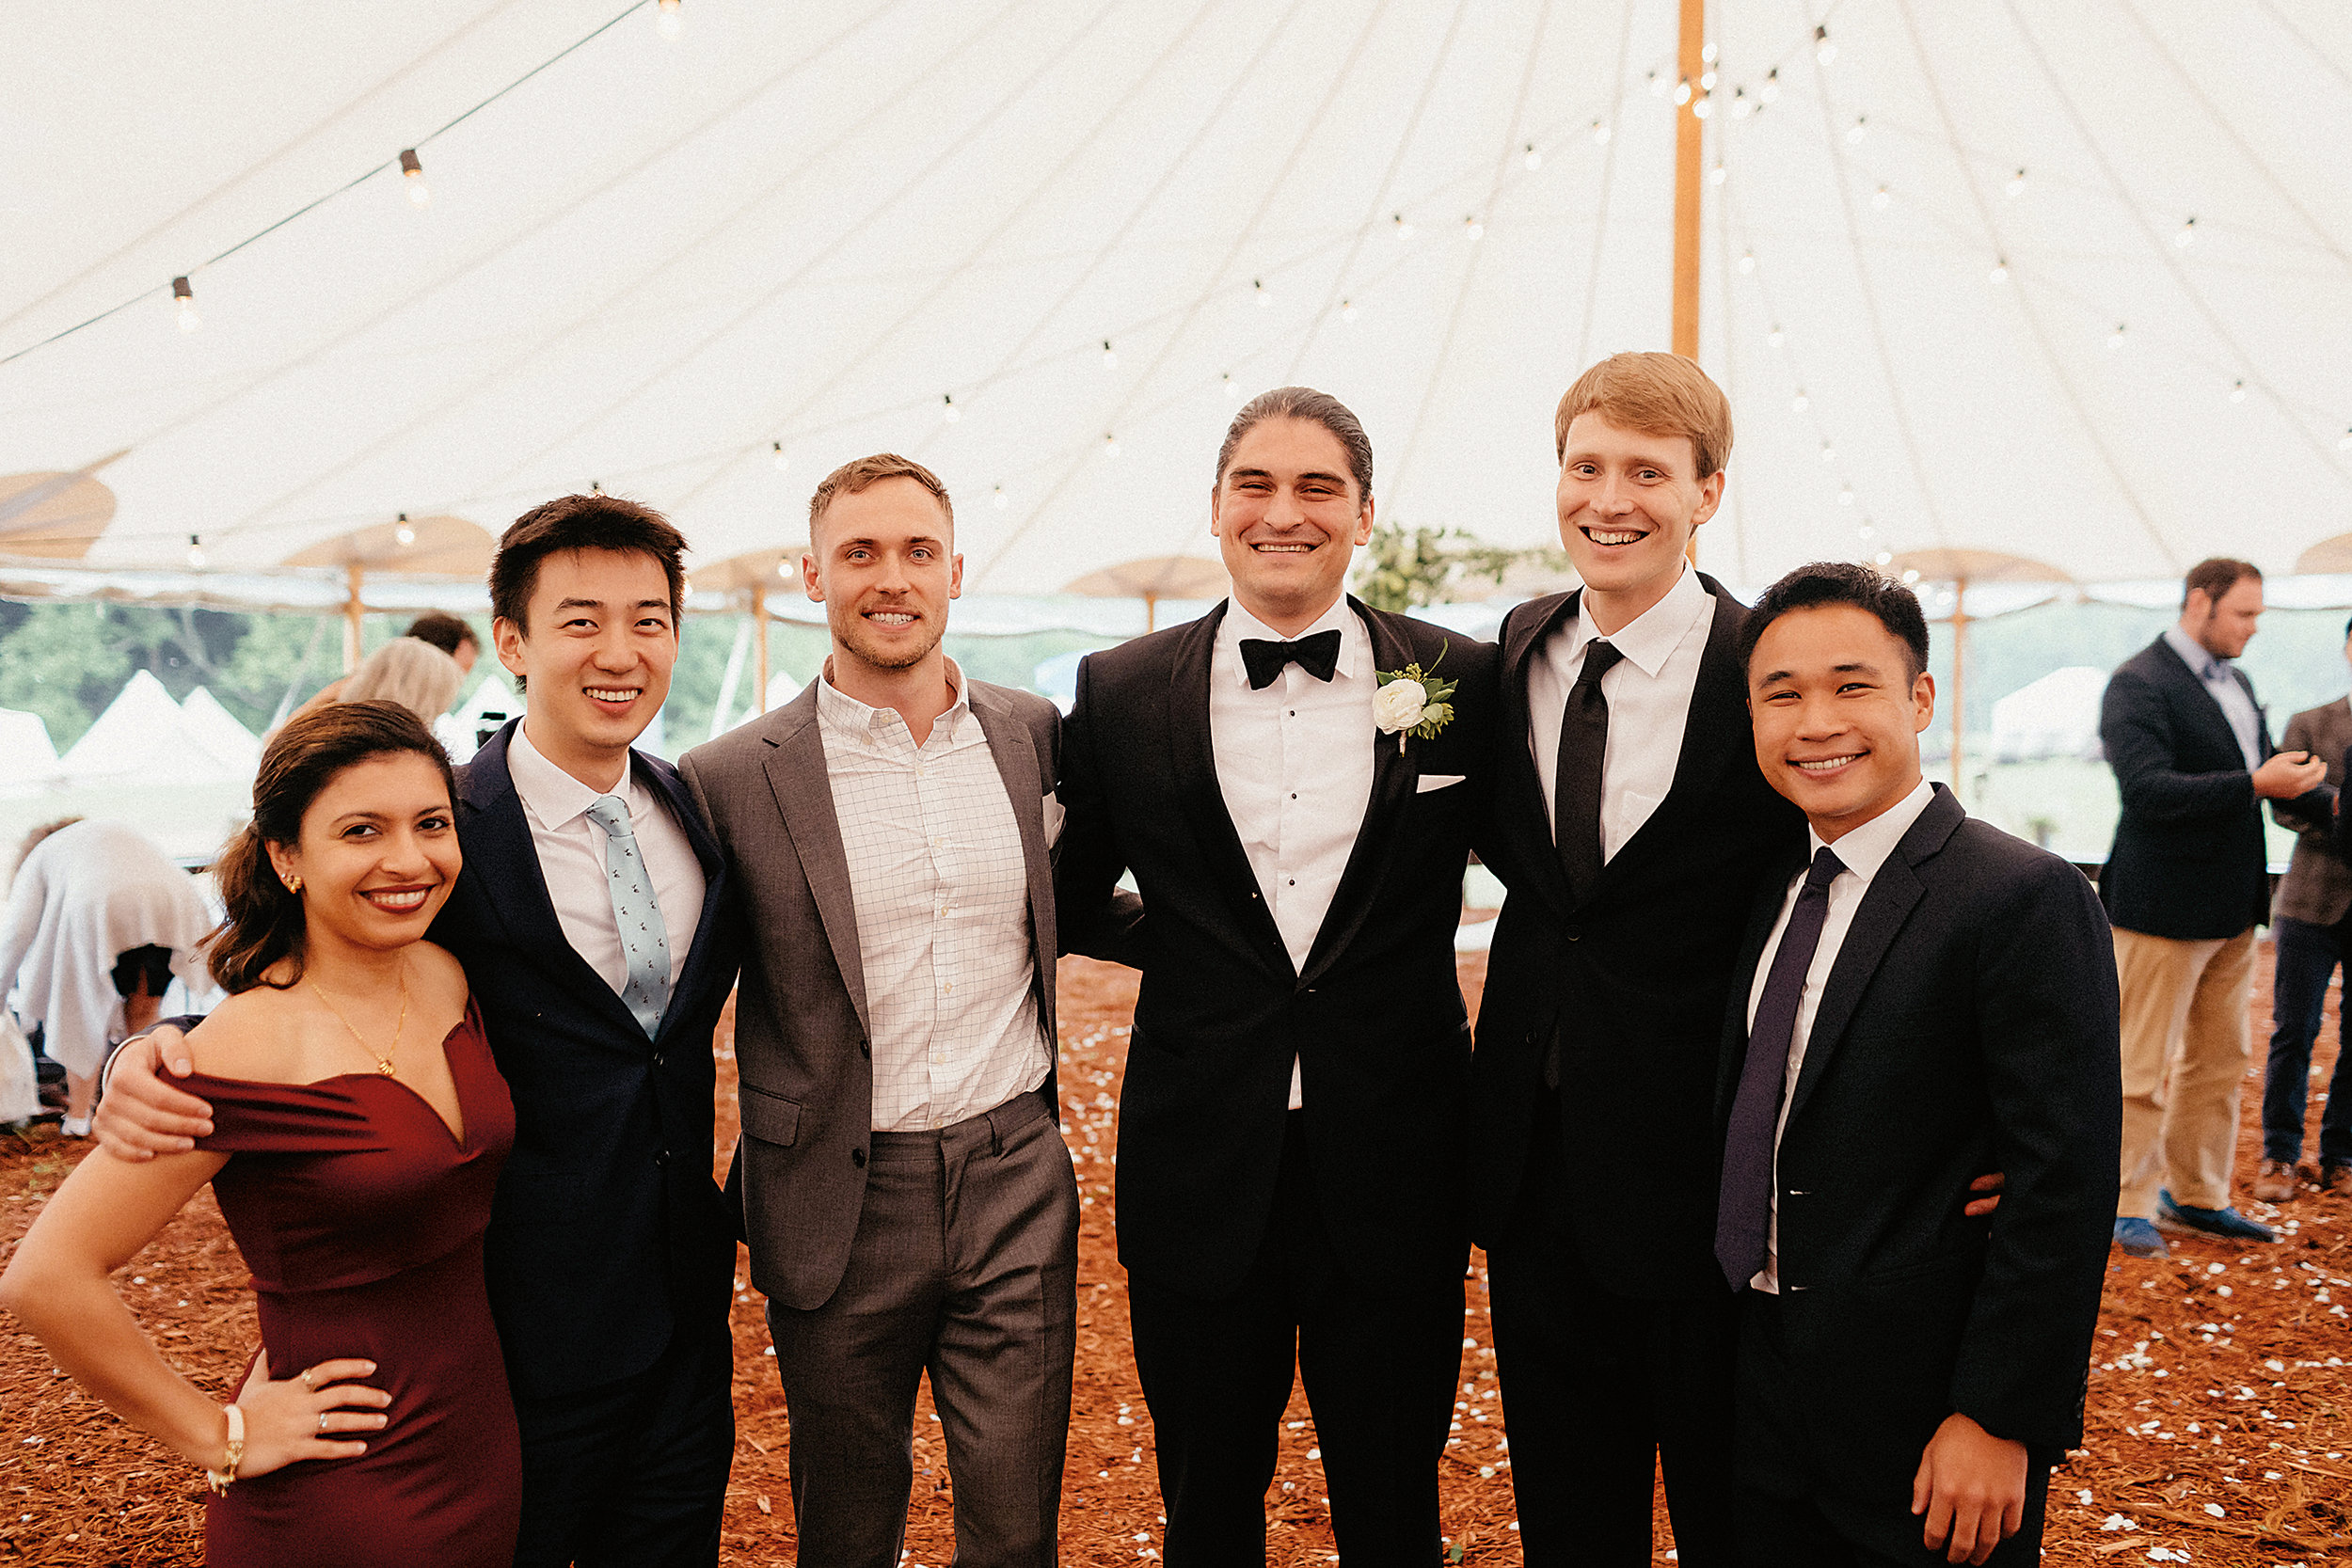 At the Catskills wedding of Rachel and Eric Jones '08: (l. to r.) Meherazade Sumariwalla, Michael Wong, Michael Michonski, Eric, Tony Ferraro, and Kai Neo.